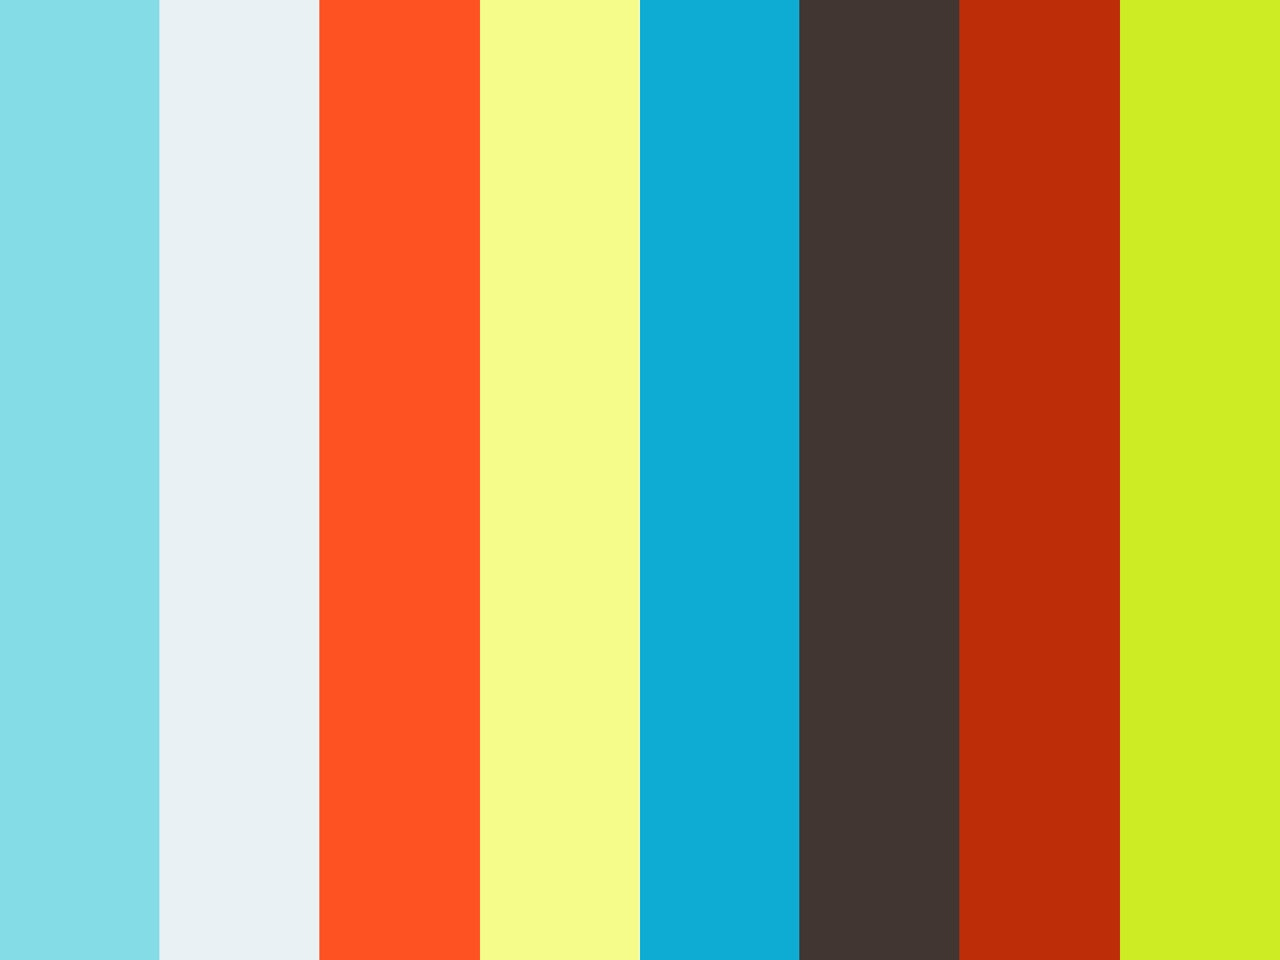 Temporary Disability benefits in New Jersey